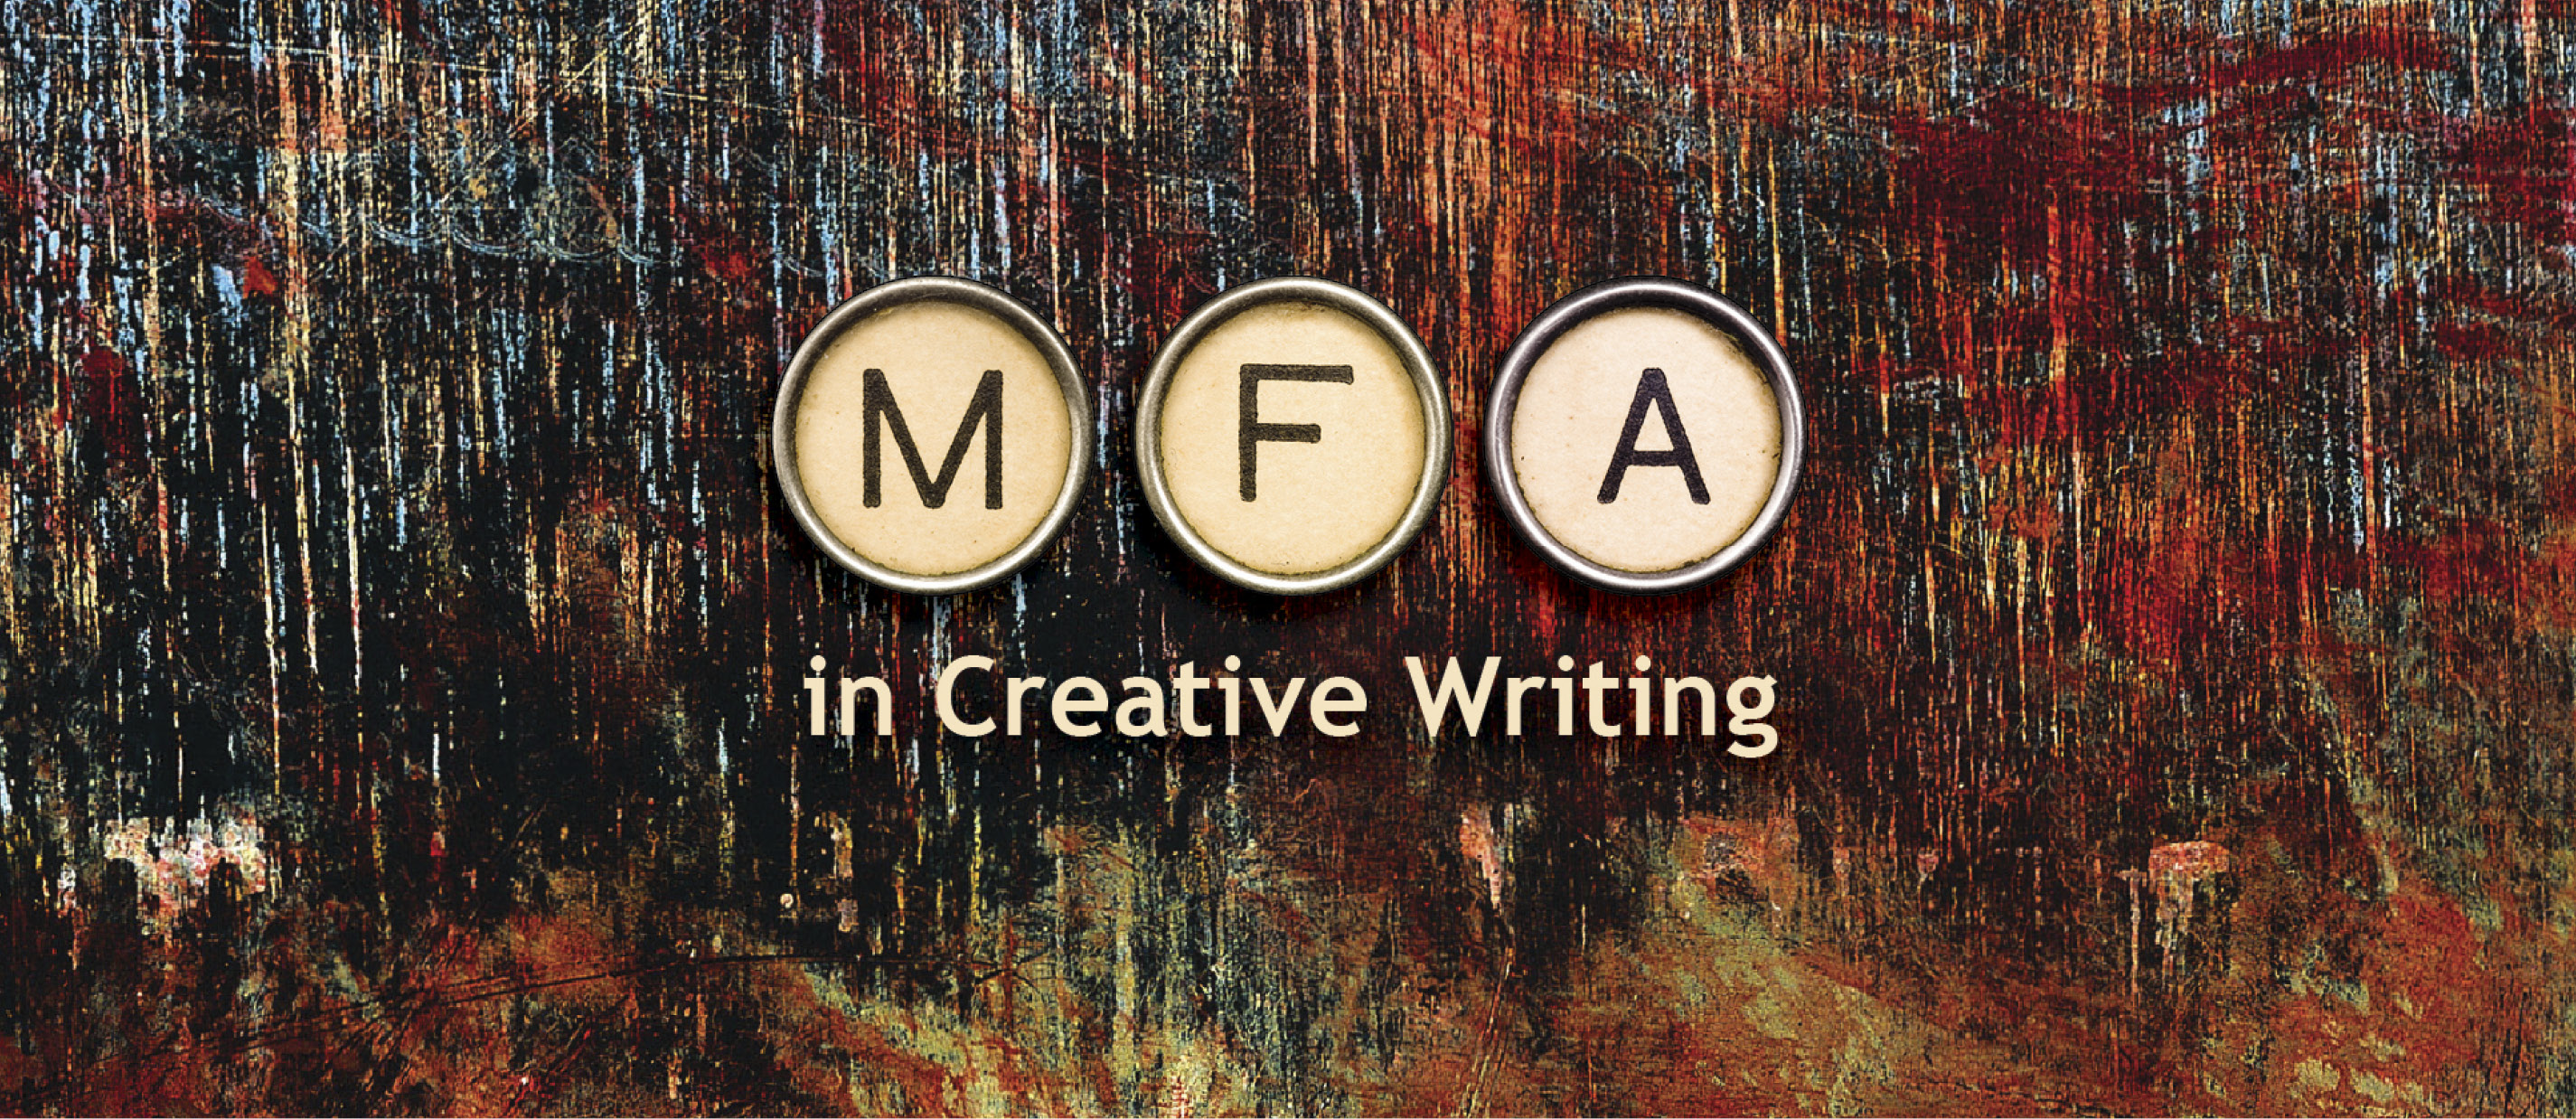 lesley university mfa creative writing faculty Program description: the mfa program in creative writing is a low-residency  program that allows students, with the oversight of a faculty.